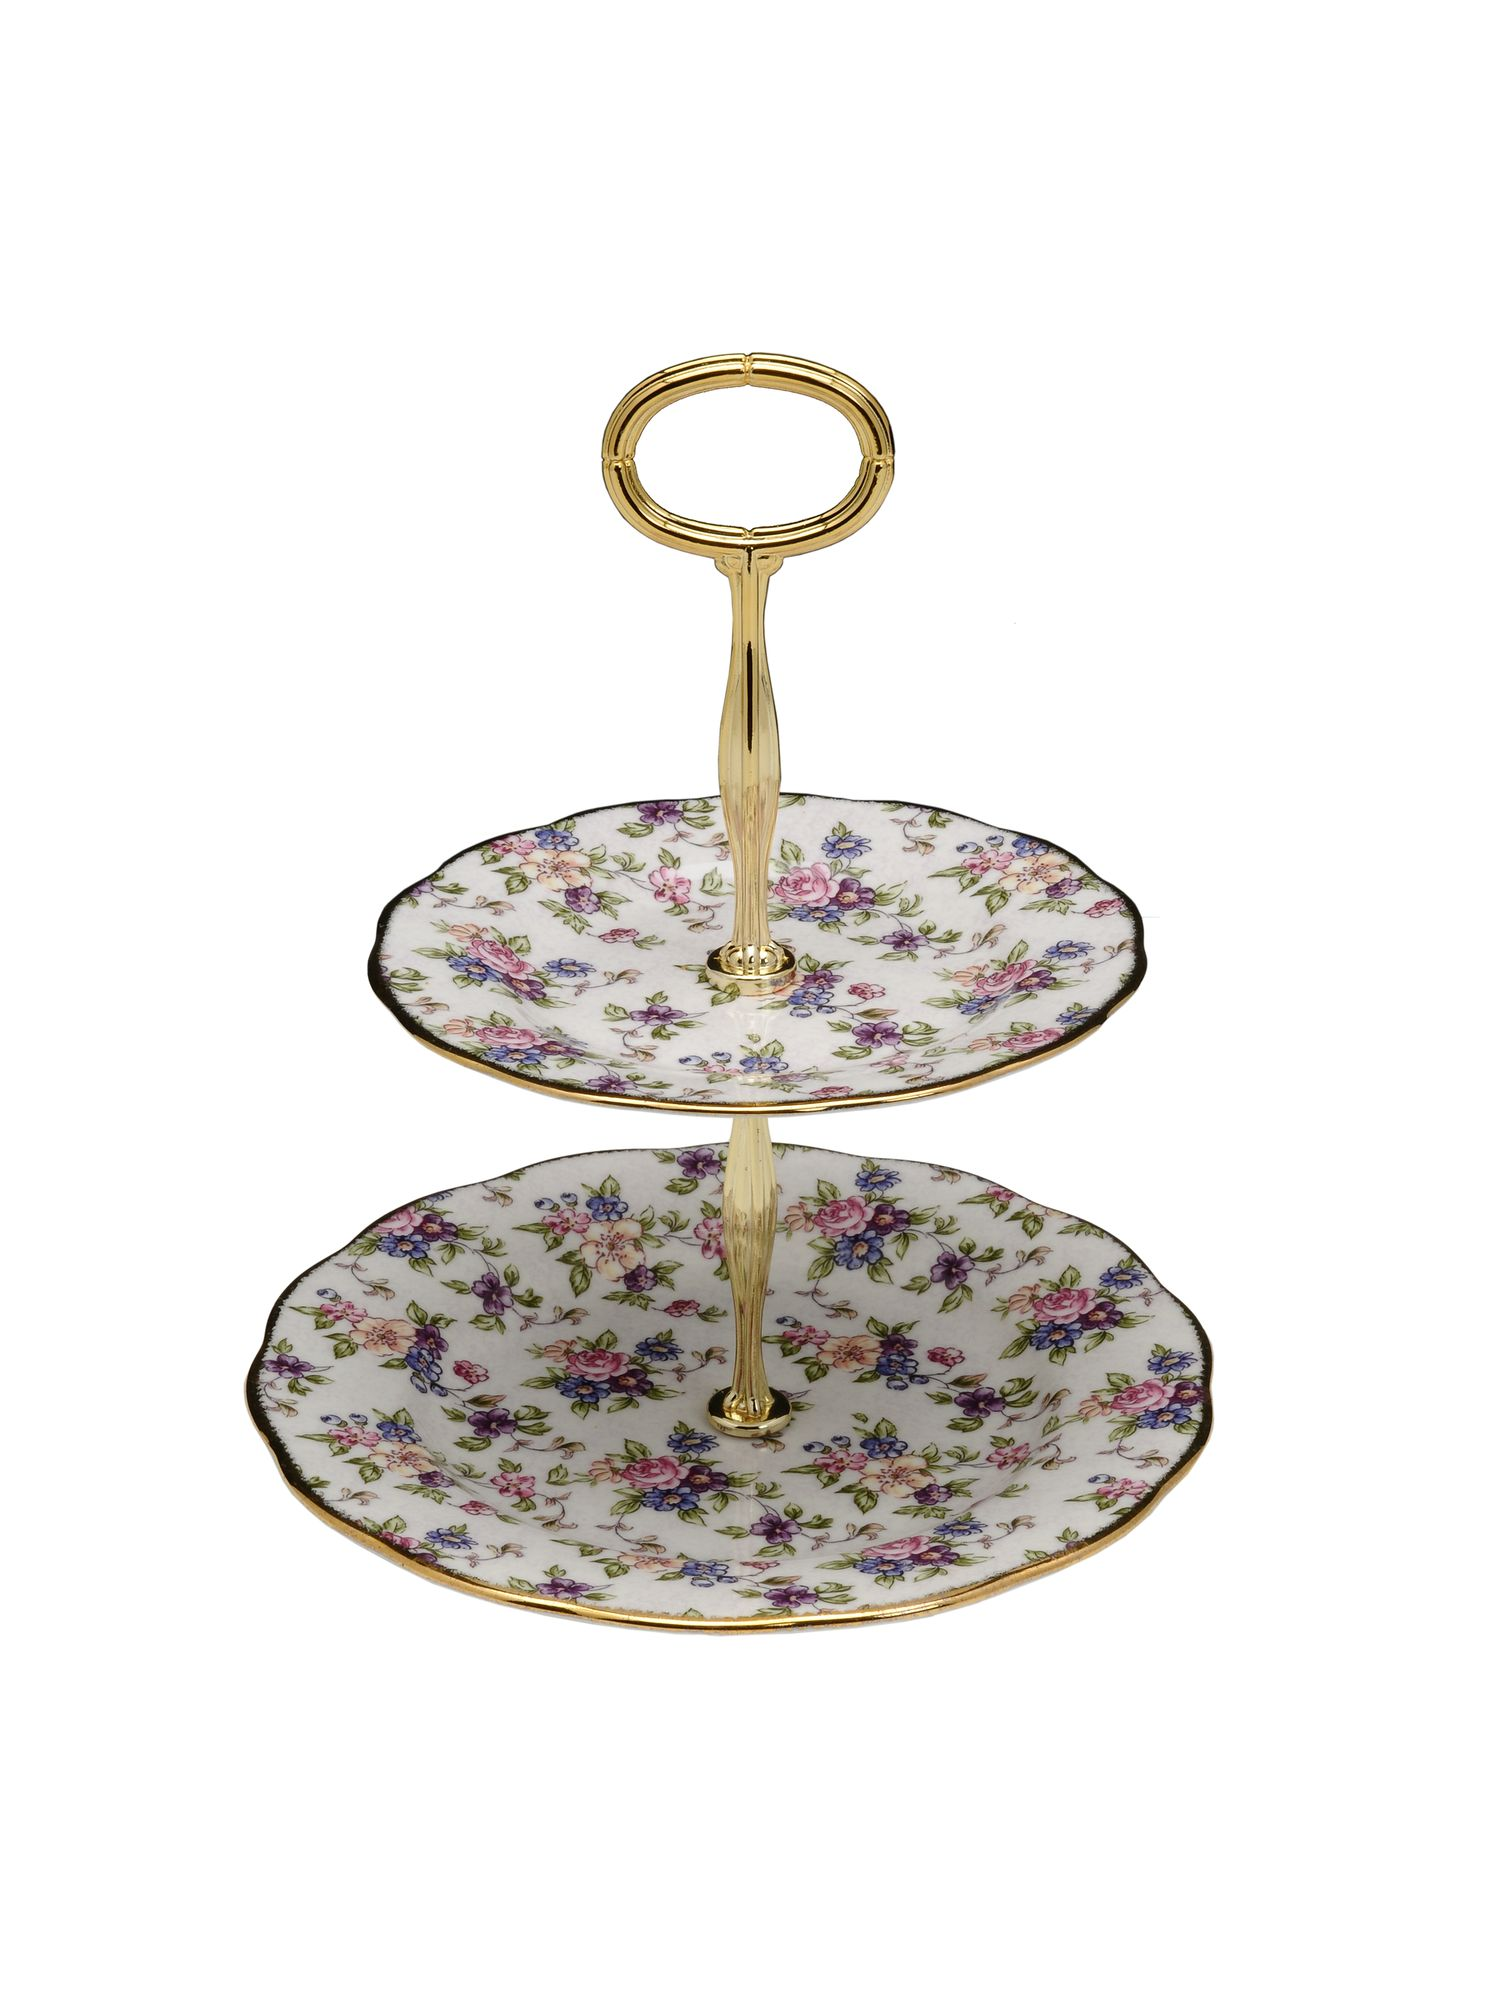 100 years of 1940 english chintz cake stand